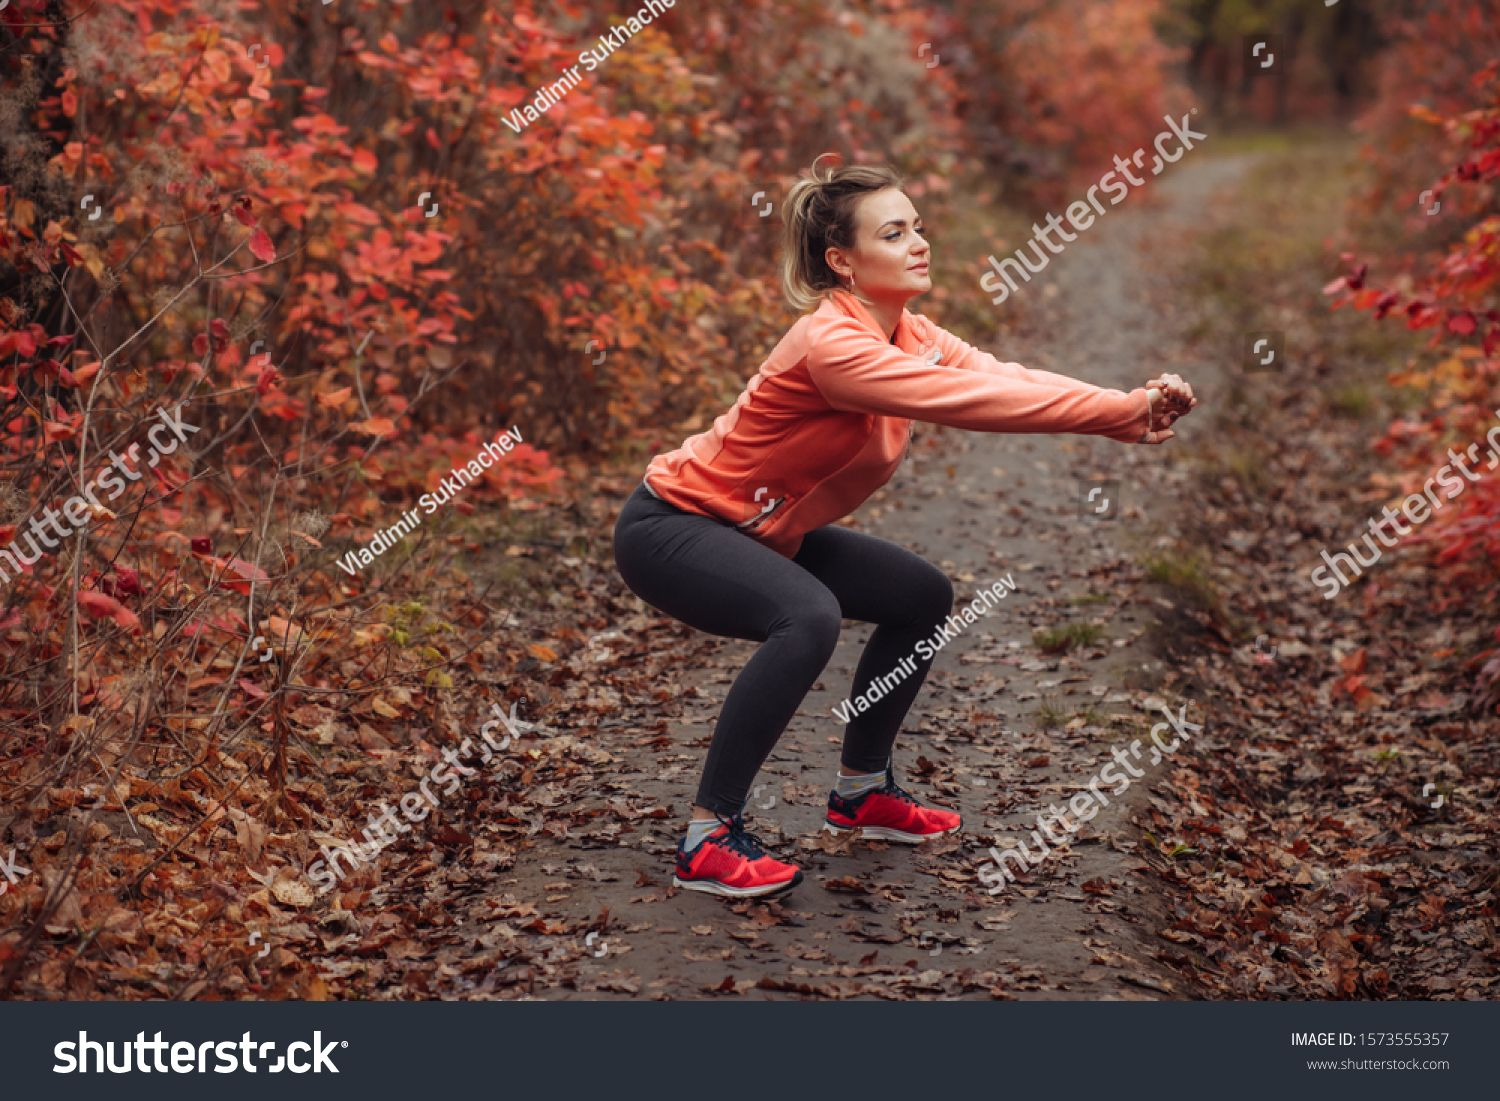 Young attractive sport woman in sportswear doing squats exercise in autumn forest with reddened lea